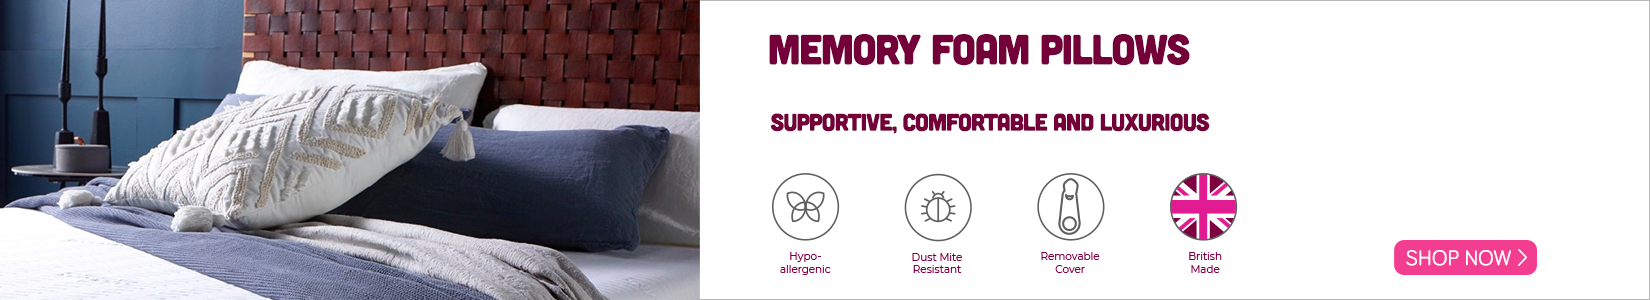 Memory foam pillow banner